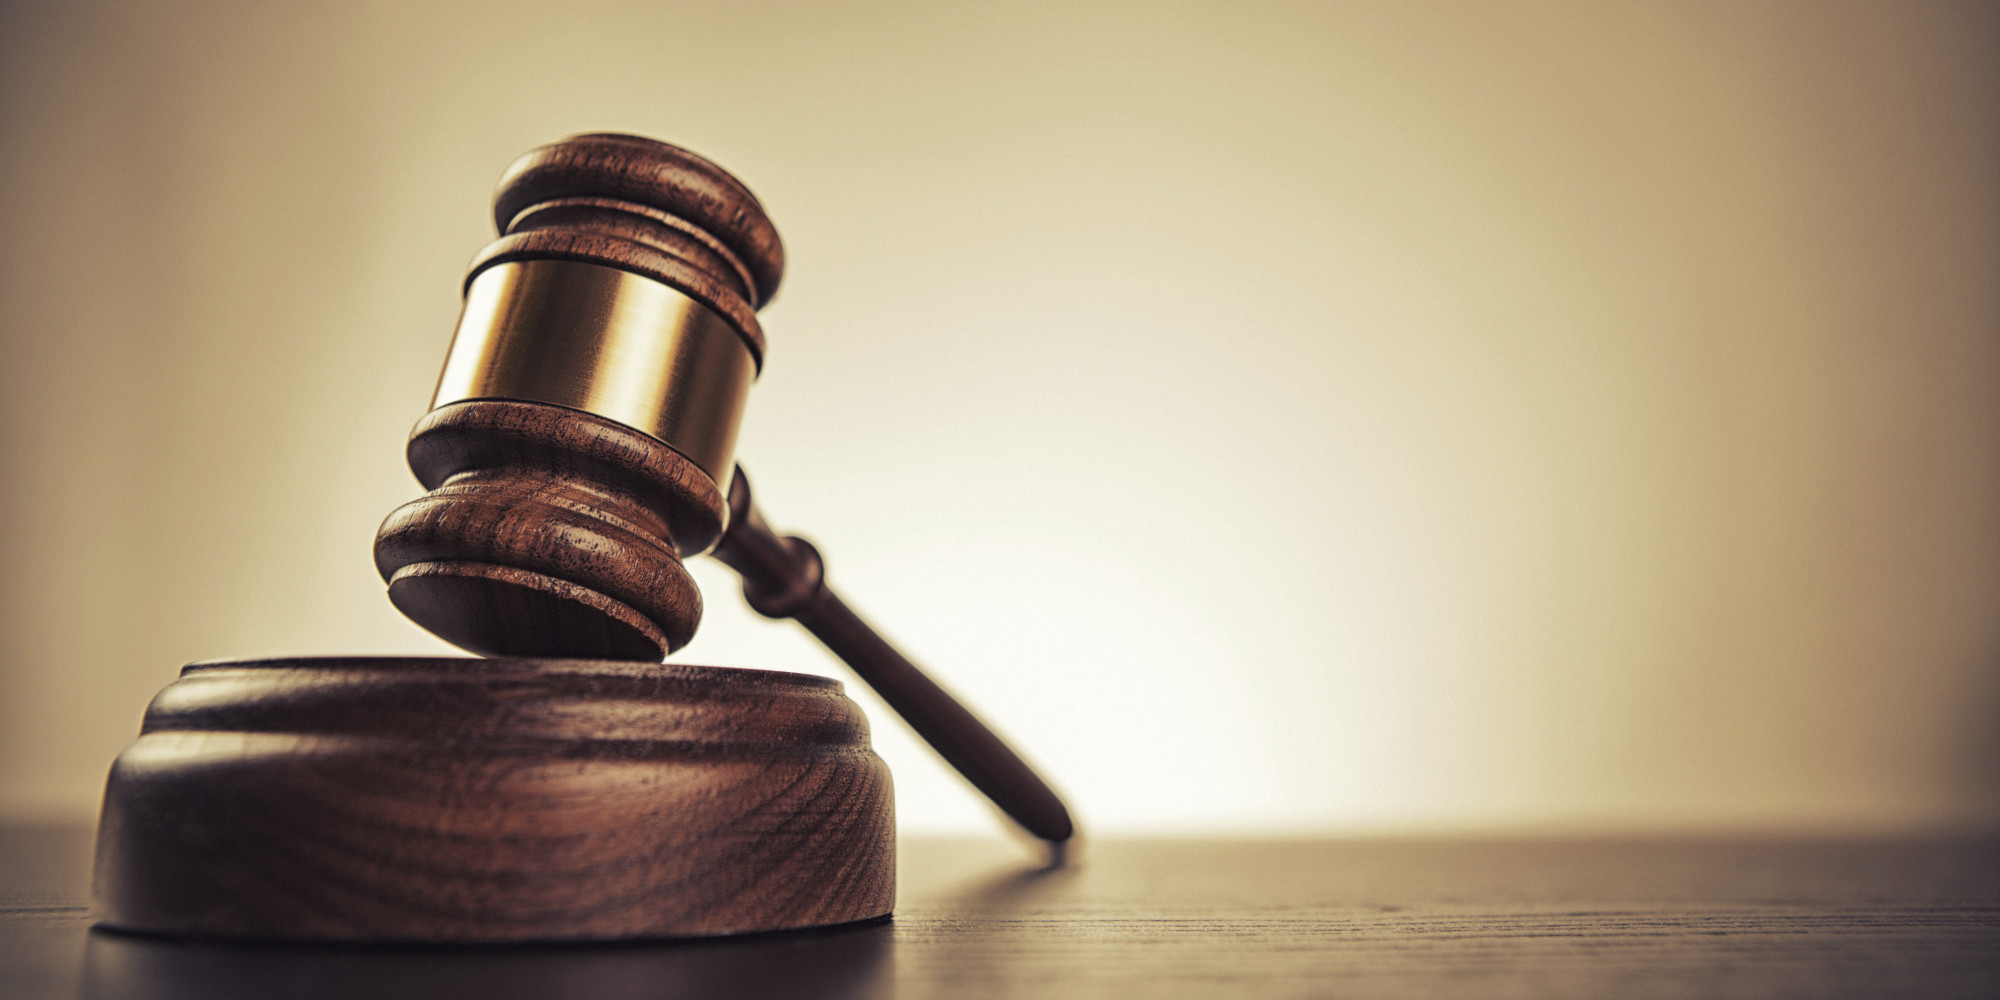 Qualities That You Need to Look For in a Patent Law Firm